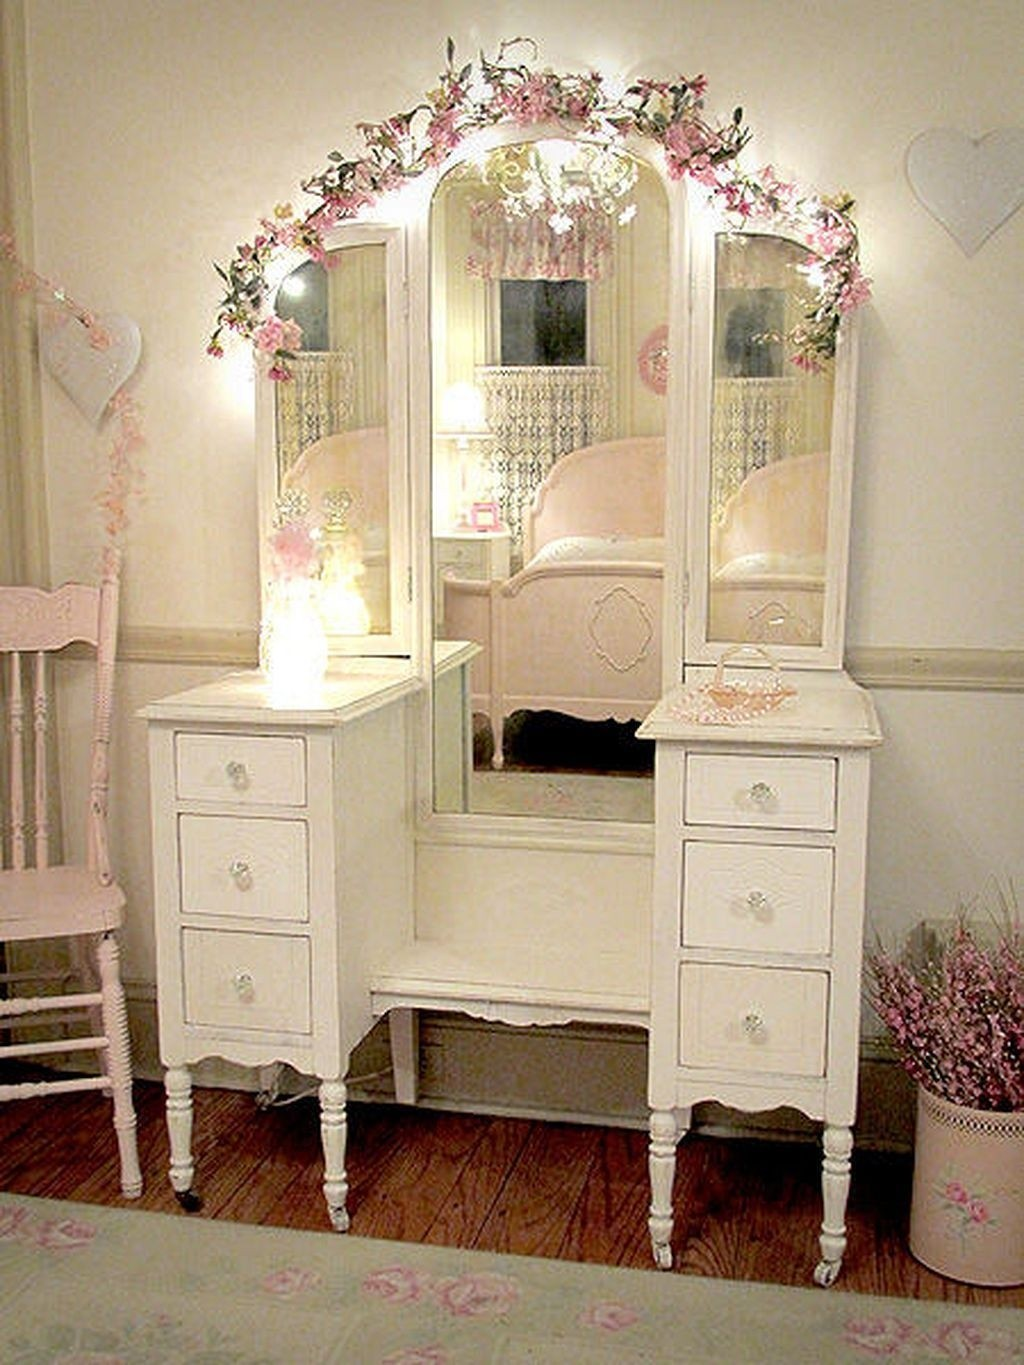 Bedroom Vanity With Lights